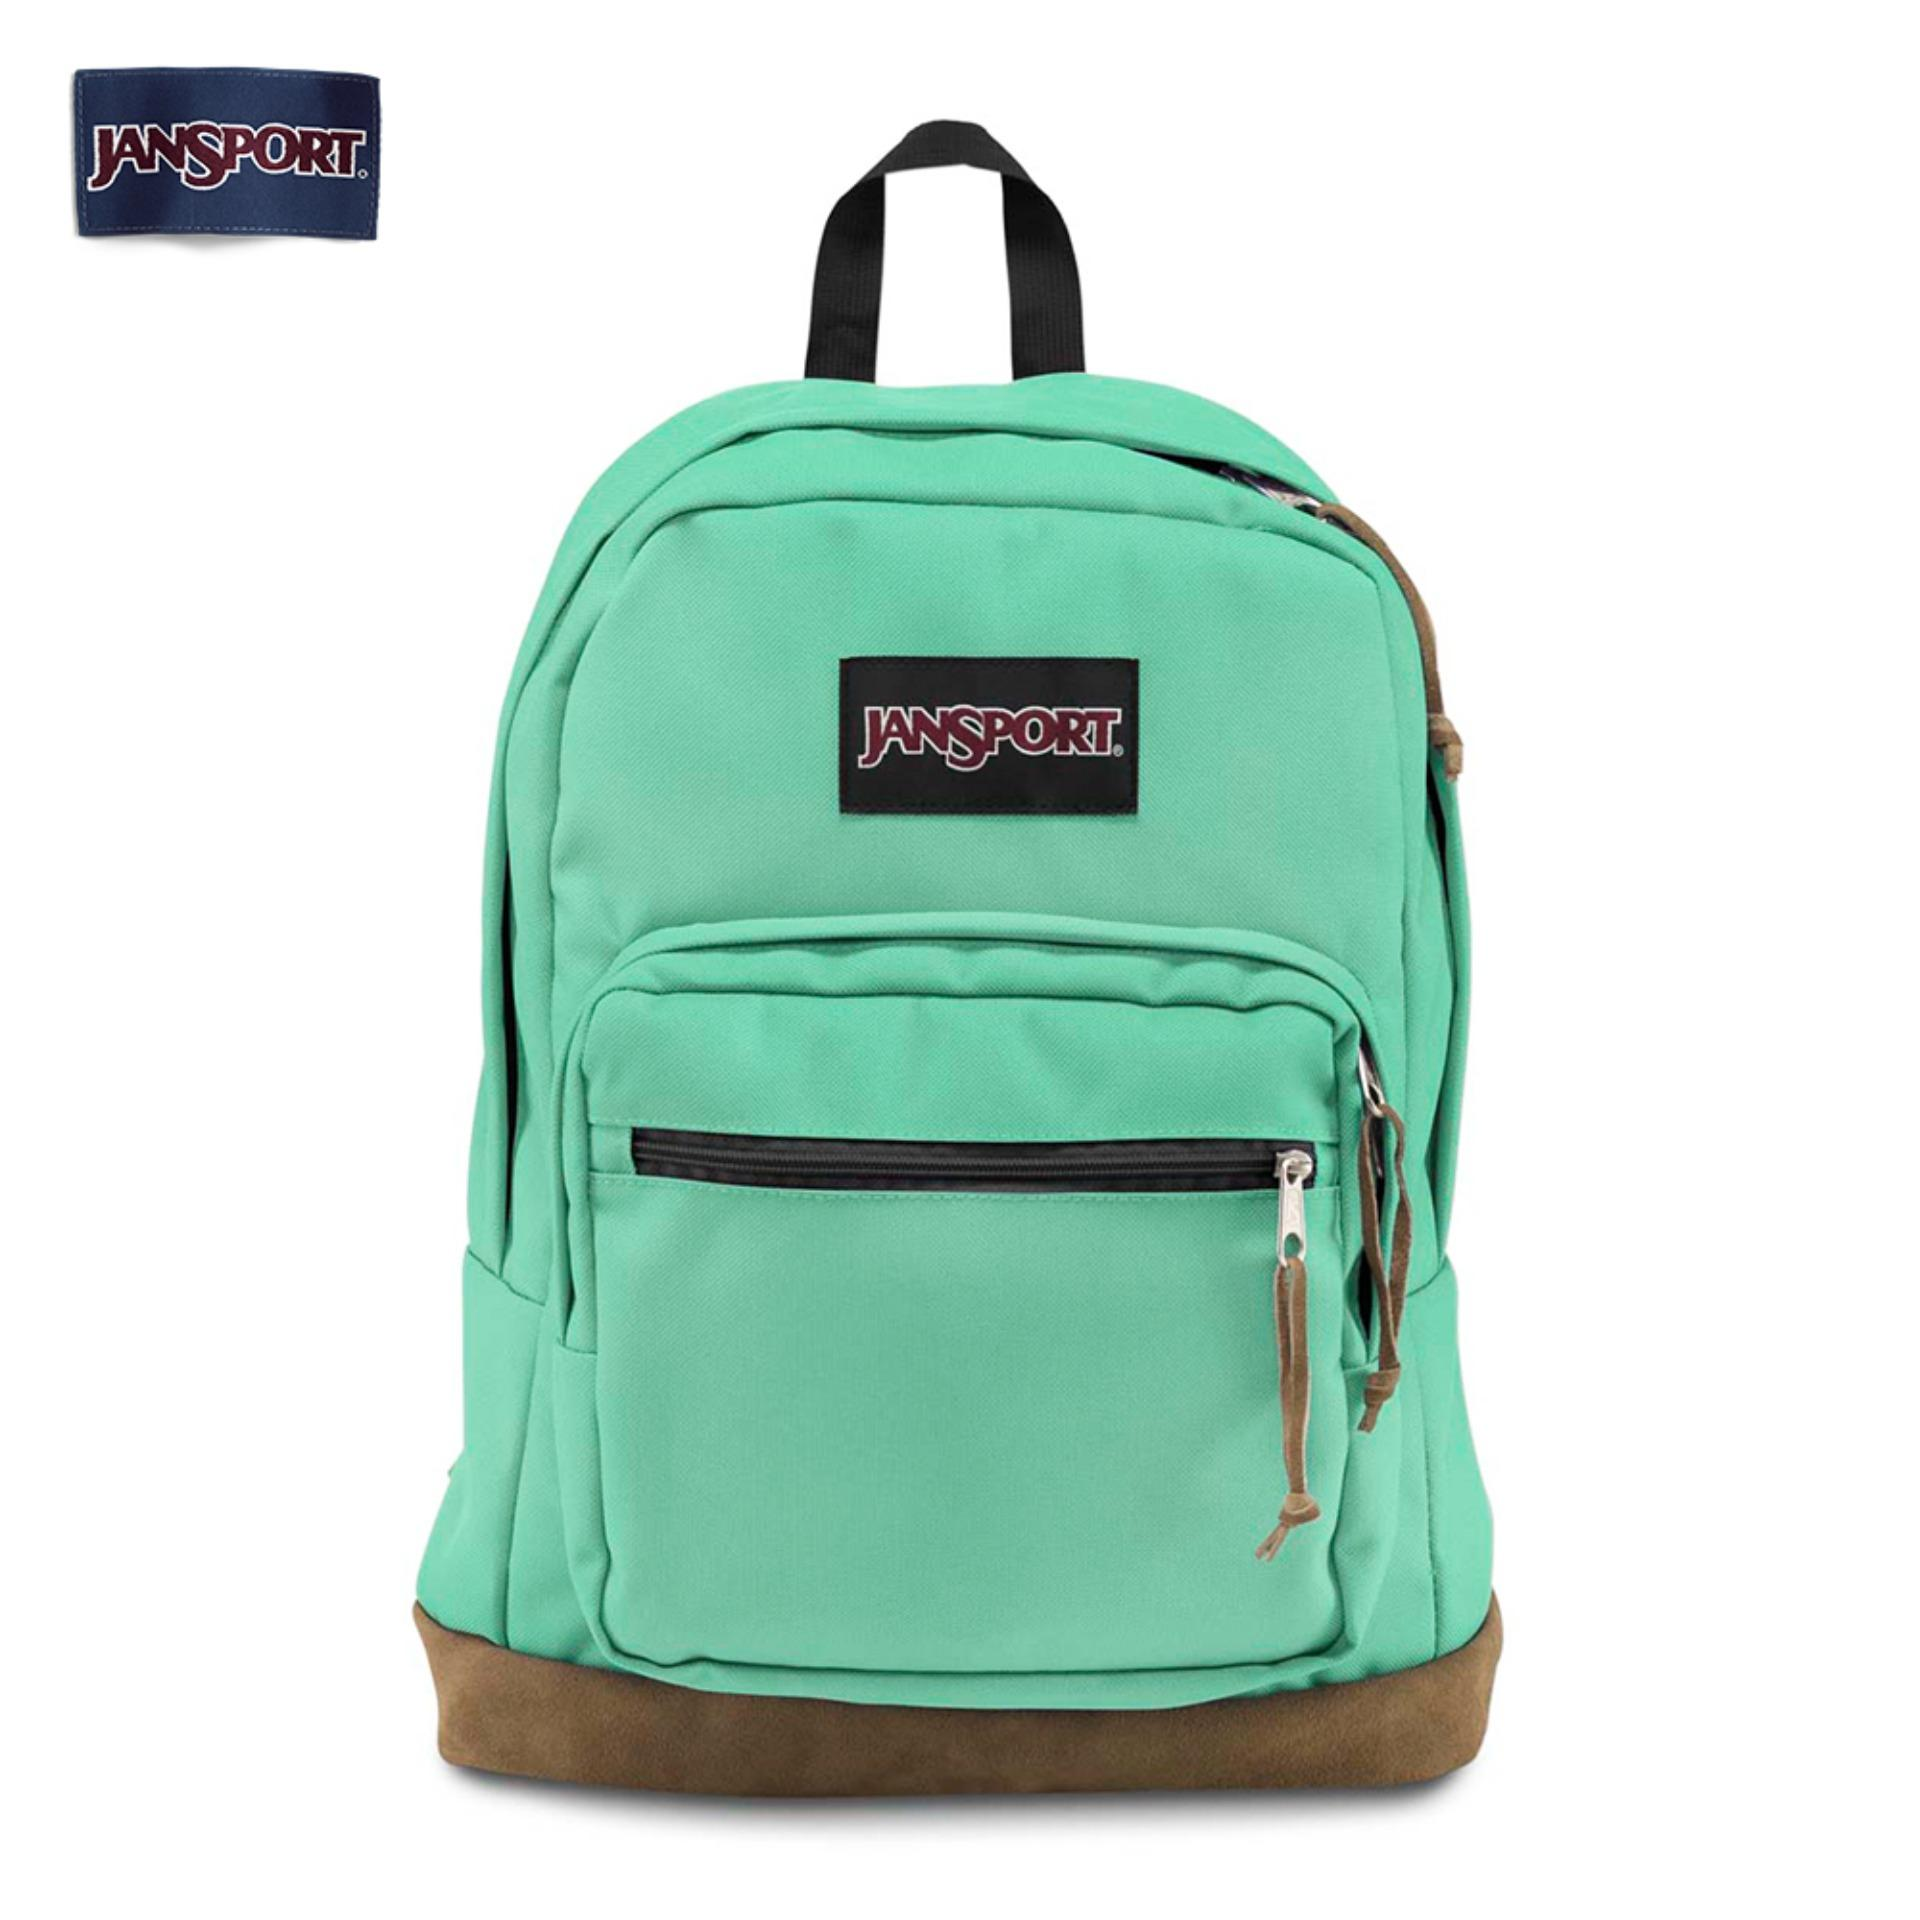 ac52be938152 JanSport Philippines  JanSport price list - JanSport Bags   Backpacks for  sale